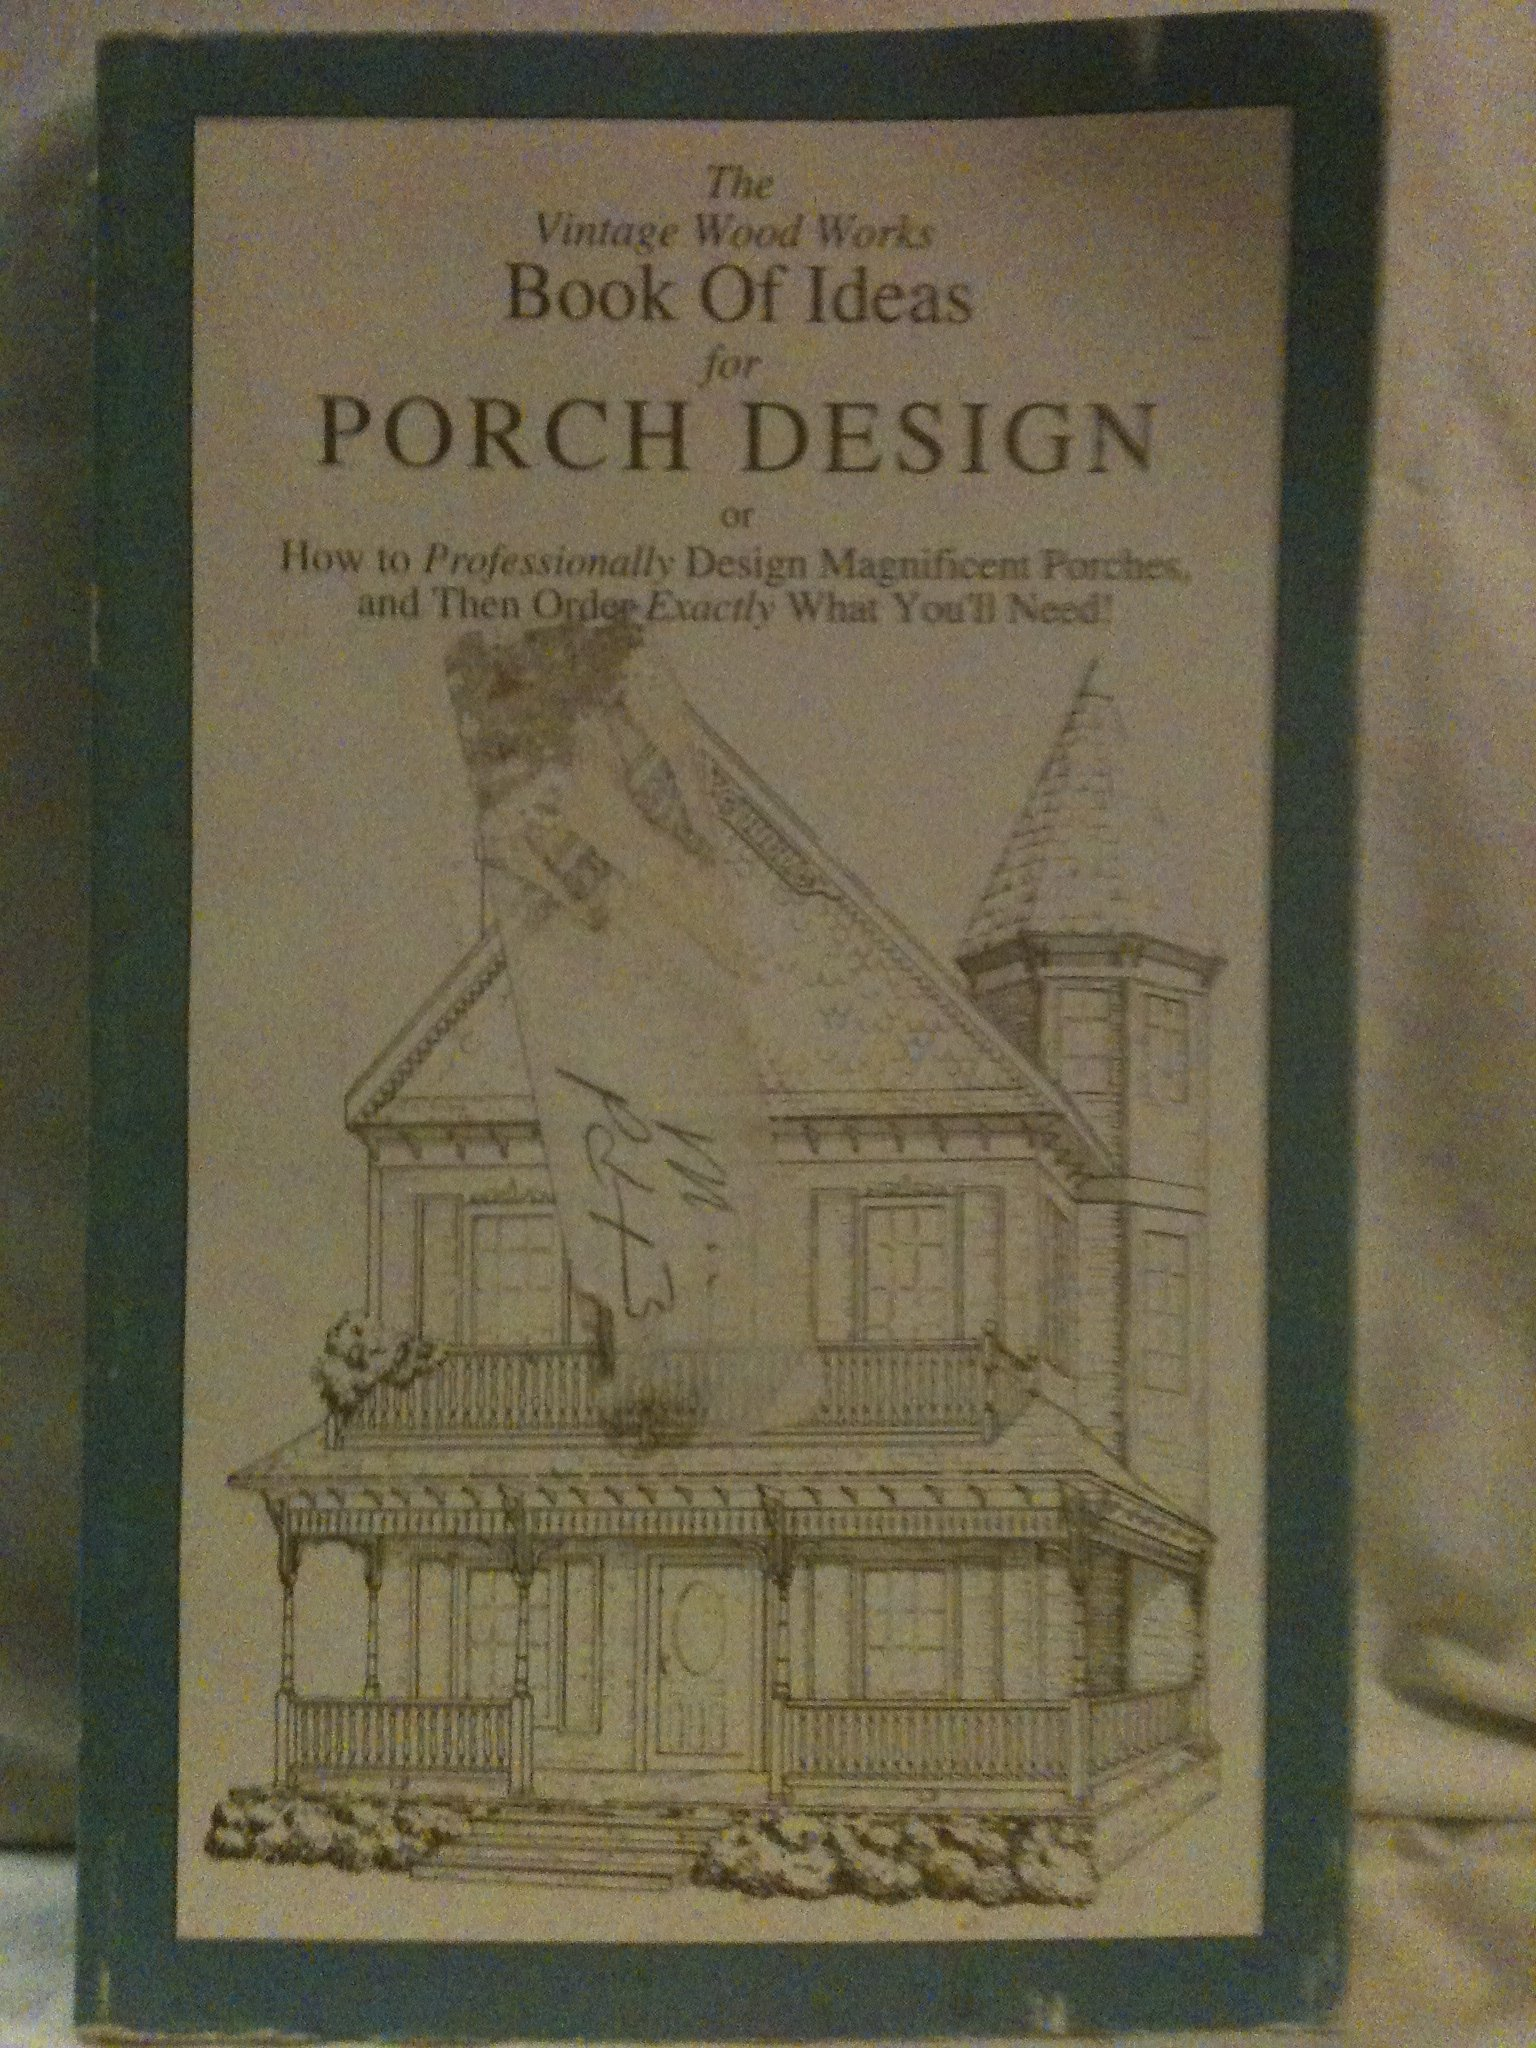 The Vintage Wood Works book of ideas for porch design: Or how to professionally design magnificent porches, and then order exactly what you'll need! (A Vintage wood works book)